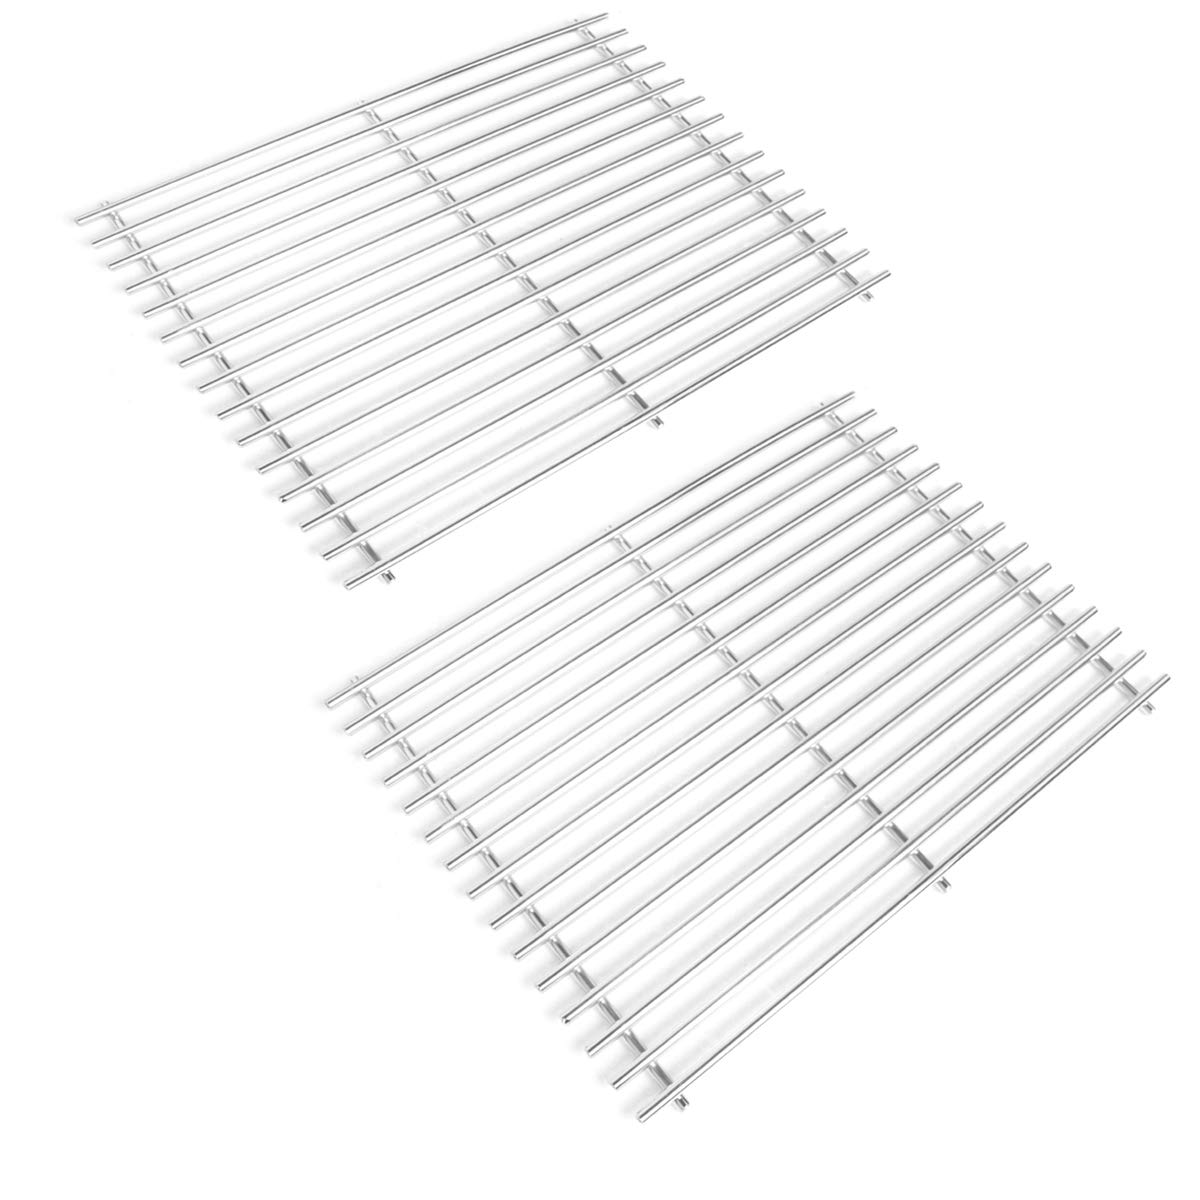 Stanbroil Stainless Steel Grill Cooking Grates Fit Weber Spirit 500, Genesis Silver A and Spirit 200 Series (with Side Control Panels) Gas Grill, Replacement parts for Weber 7521 7522 7523 65904 65905